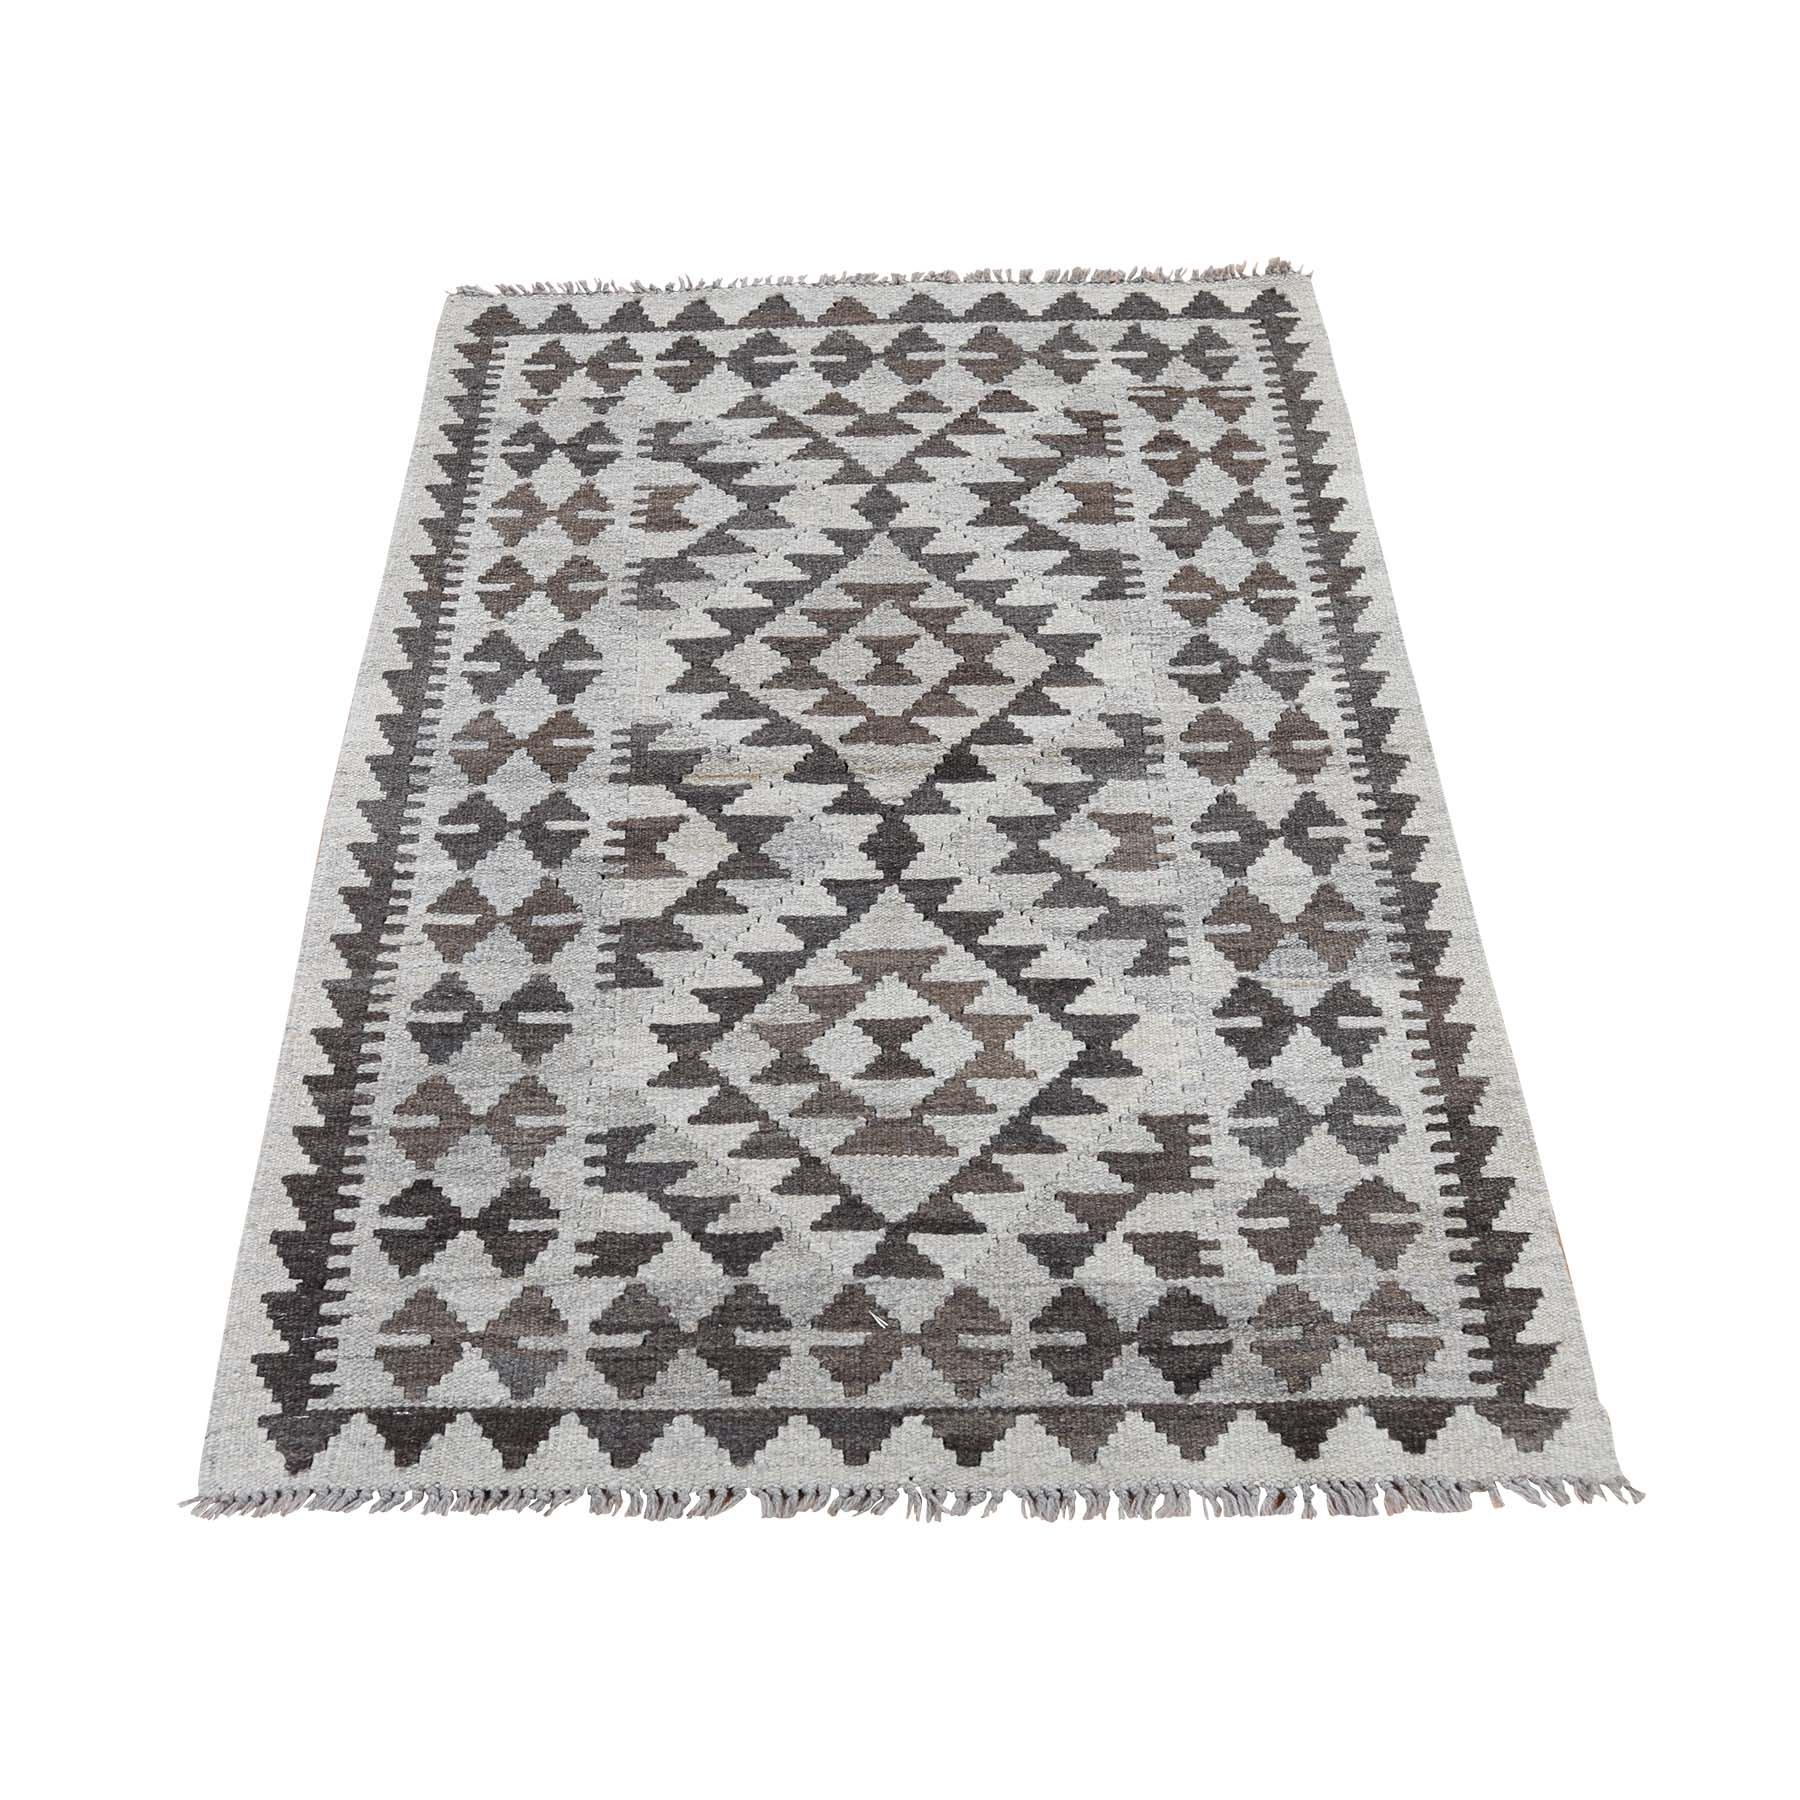 "2'9""X4' Afghan Kilim Reversible Undyed Natural Wool Hand Woven Oriental Rug moaddaa9"